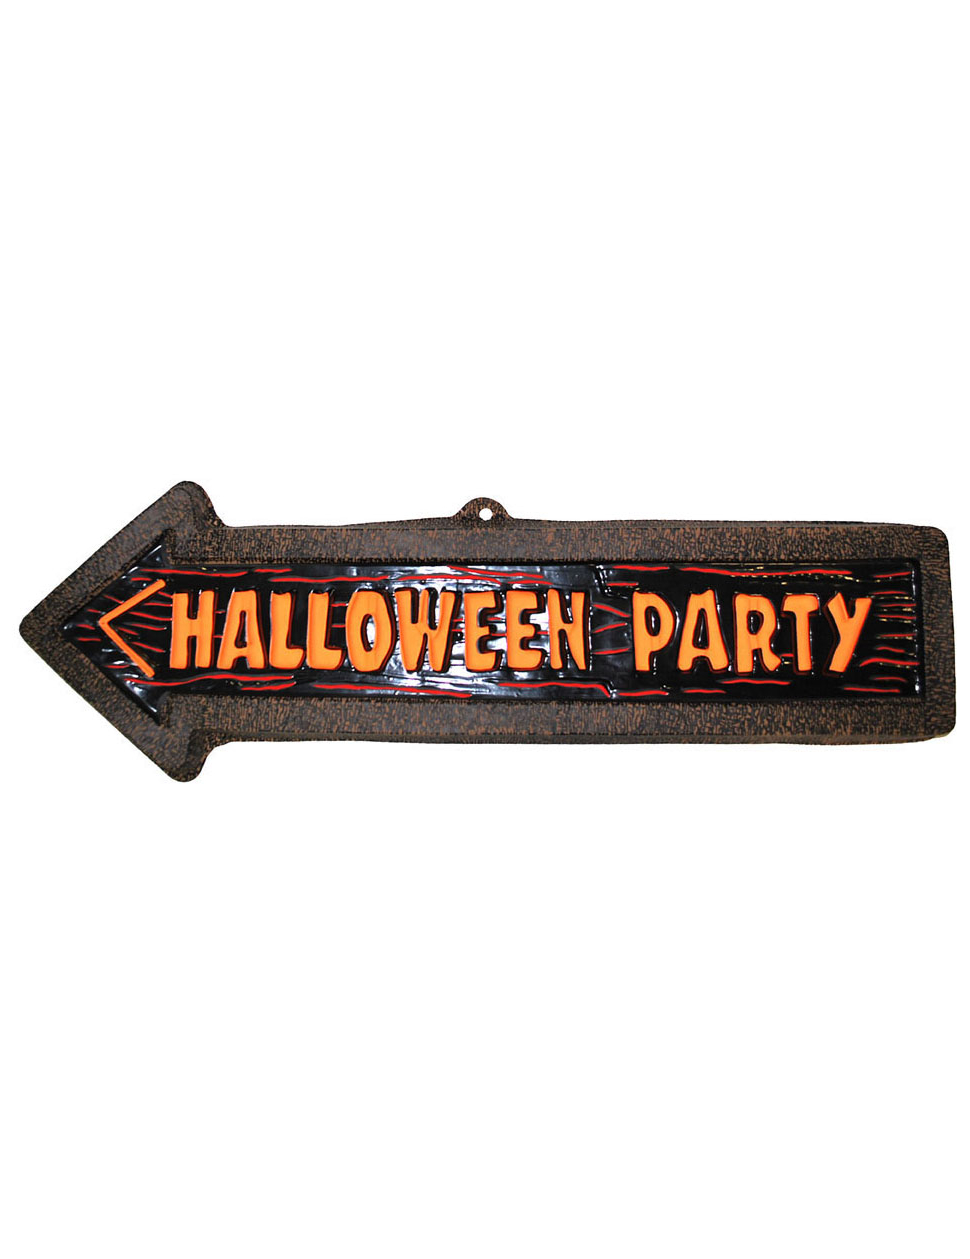 D coration murale fl che halloween party 57 x 19 cm achat for Decoration murale halloween